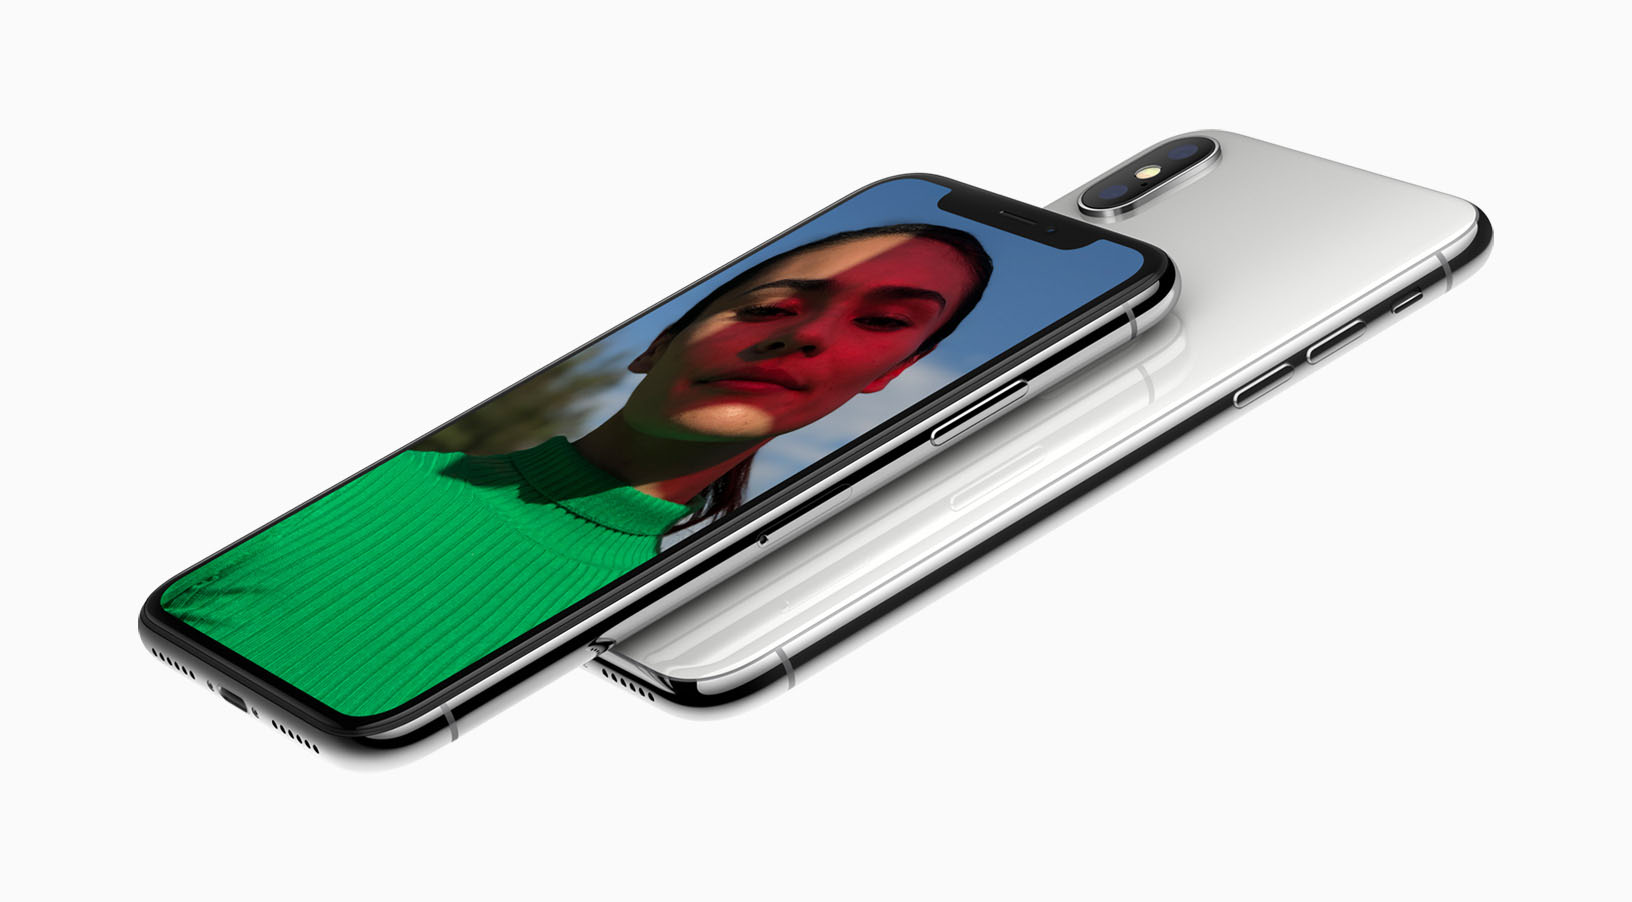 iPhone X schuin